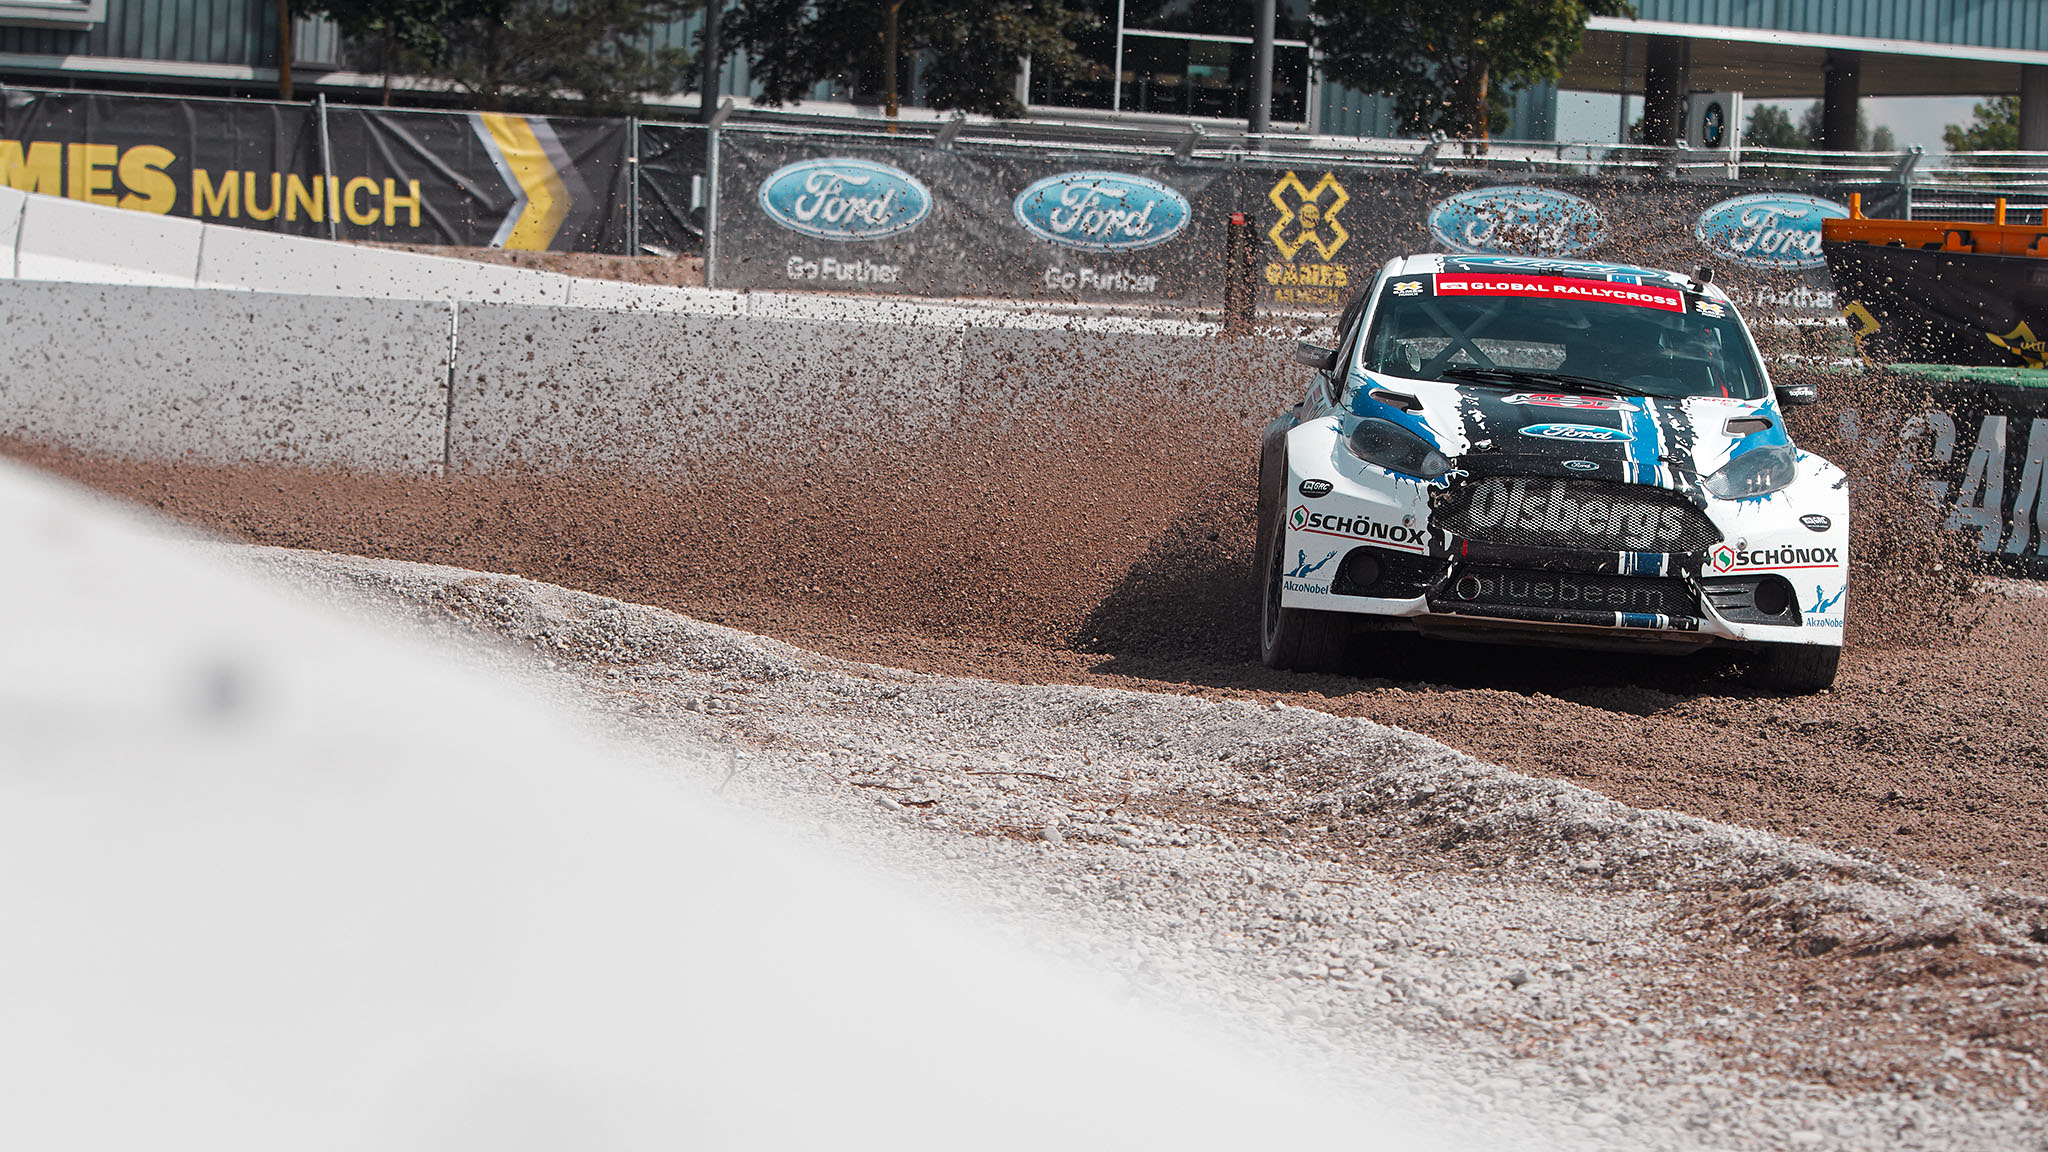 Toomas Topi Heikkinen slides around a corner Sunday ien route/i to winning the X Games Munich RallyCross gold medal. It was his first gold after winning bronze in the first race on Saturday in Munich and silver at X Games Brazil.